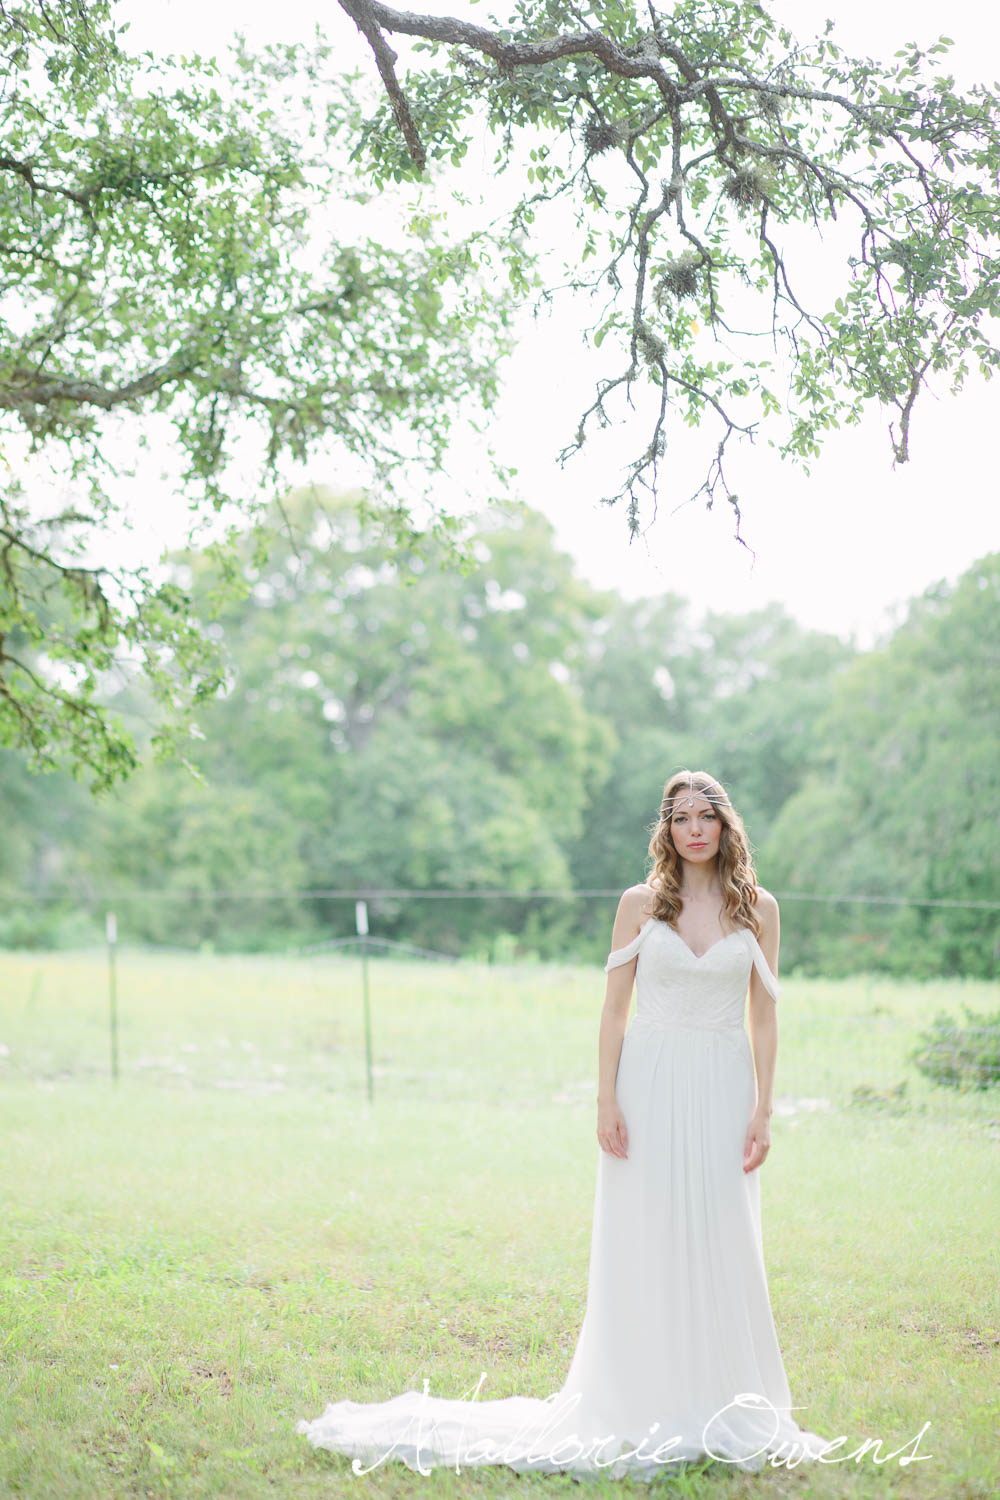 Bridal Session in Austin, Texas | MALLORIE OWENS